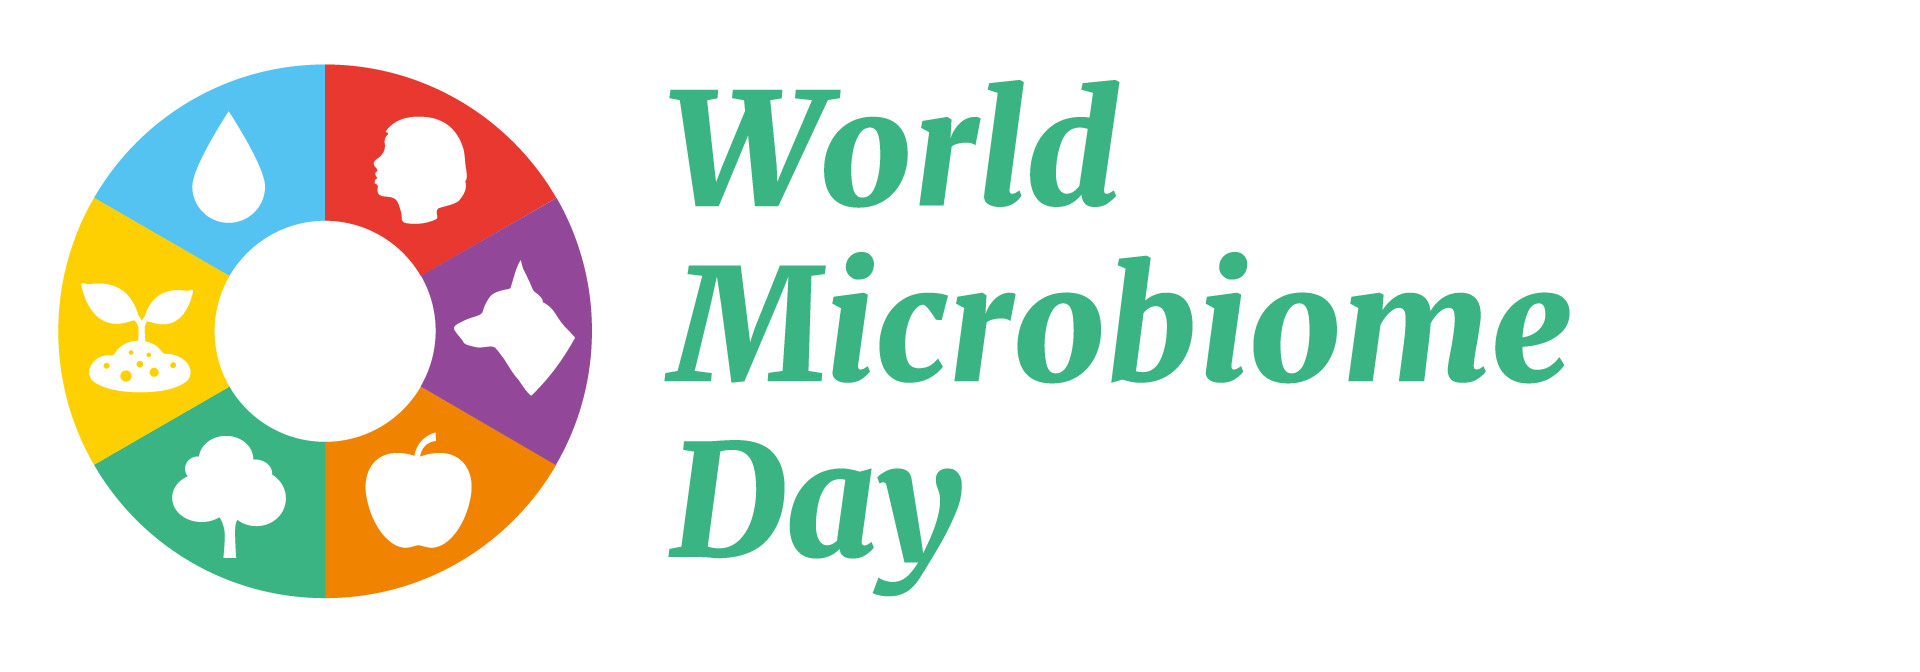 This was World Microbiome Day 2020